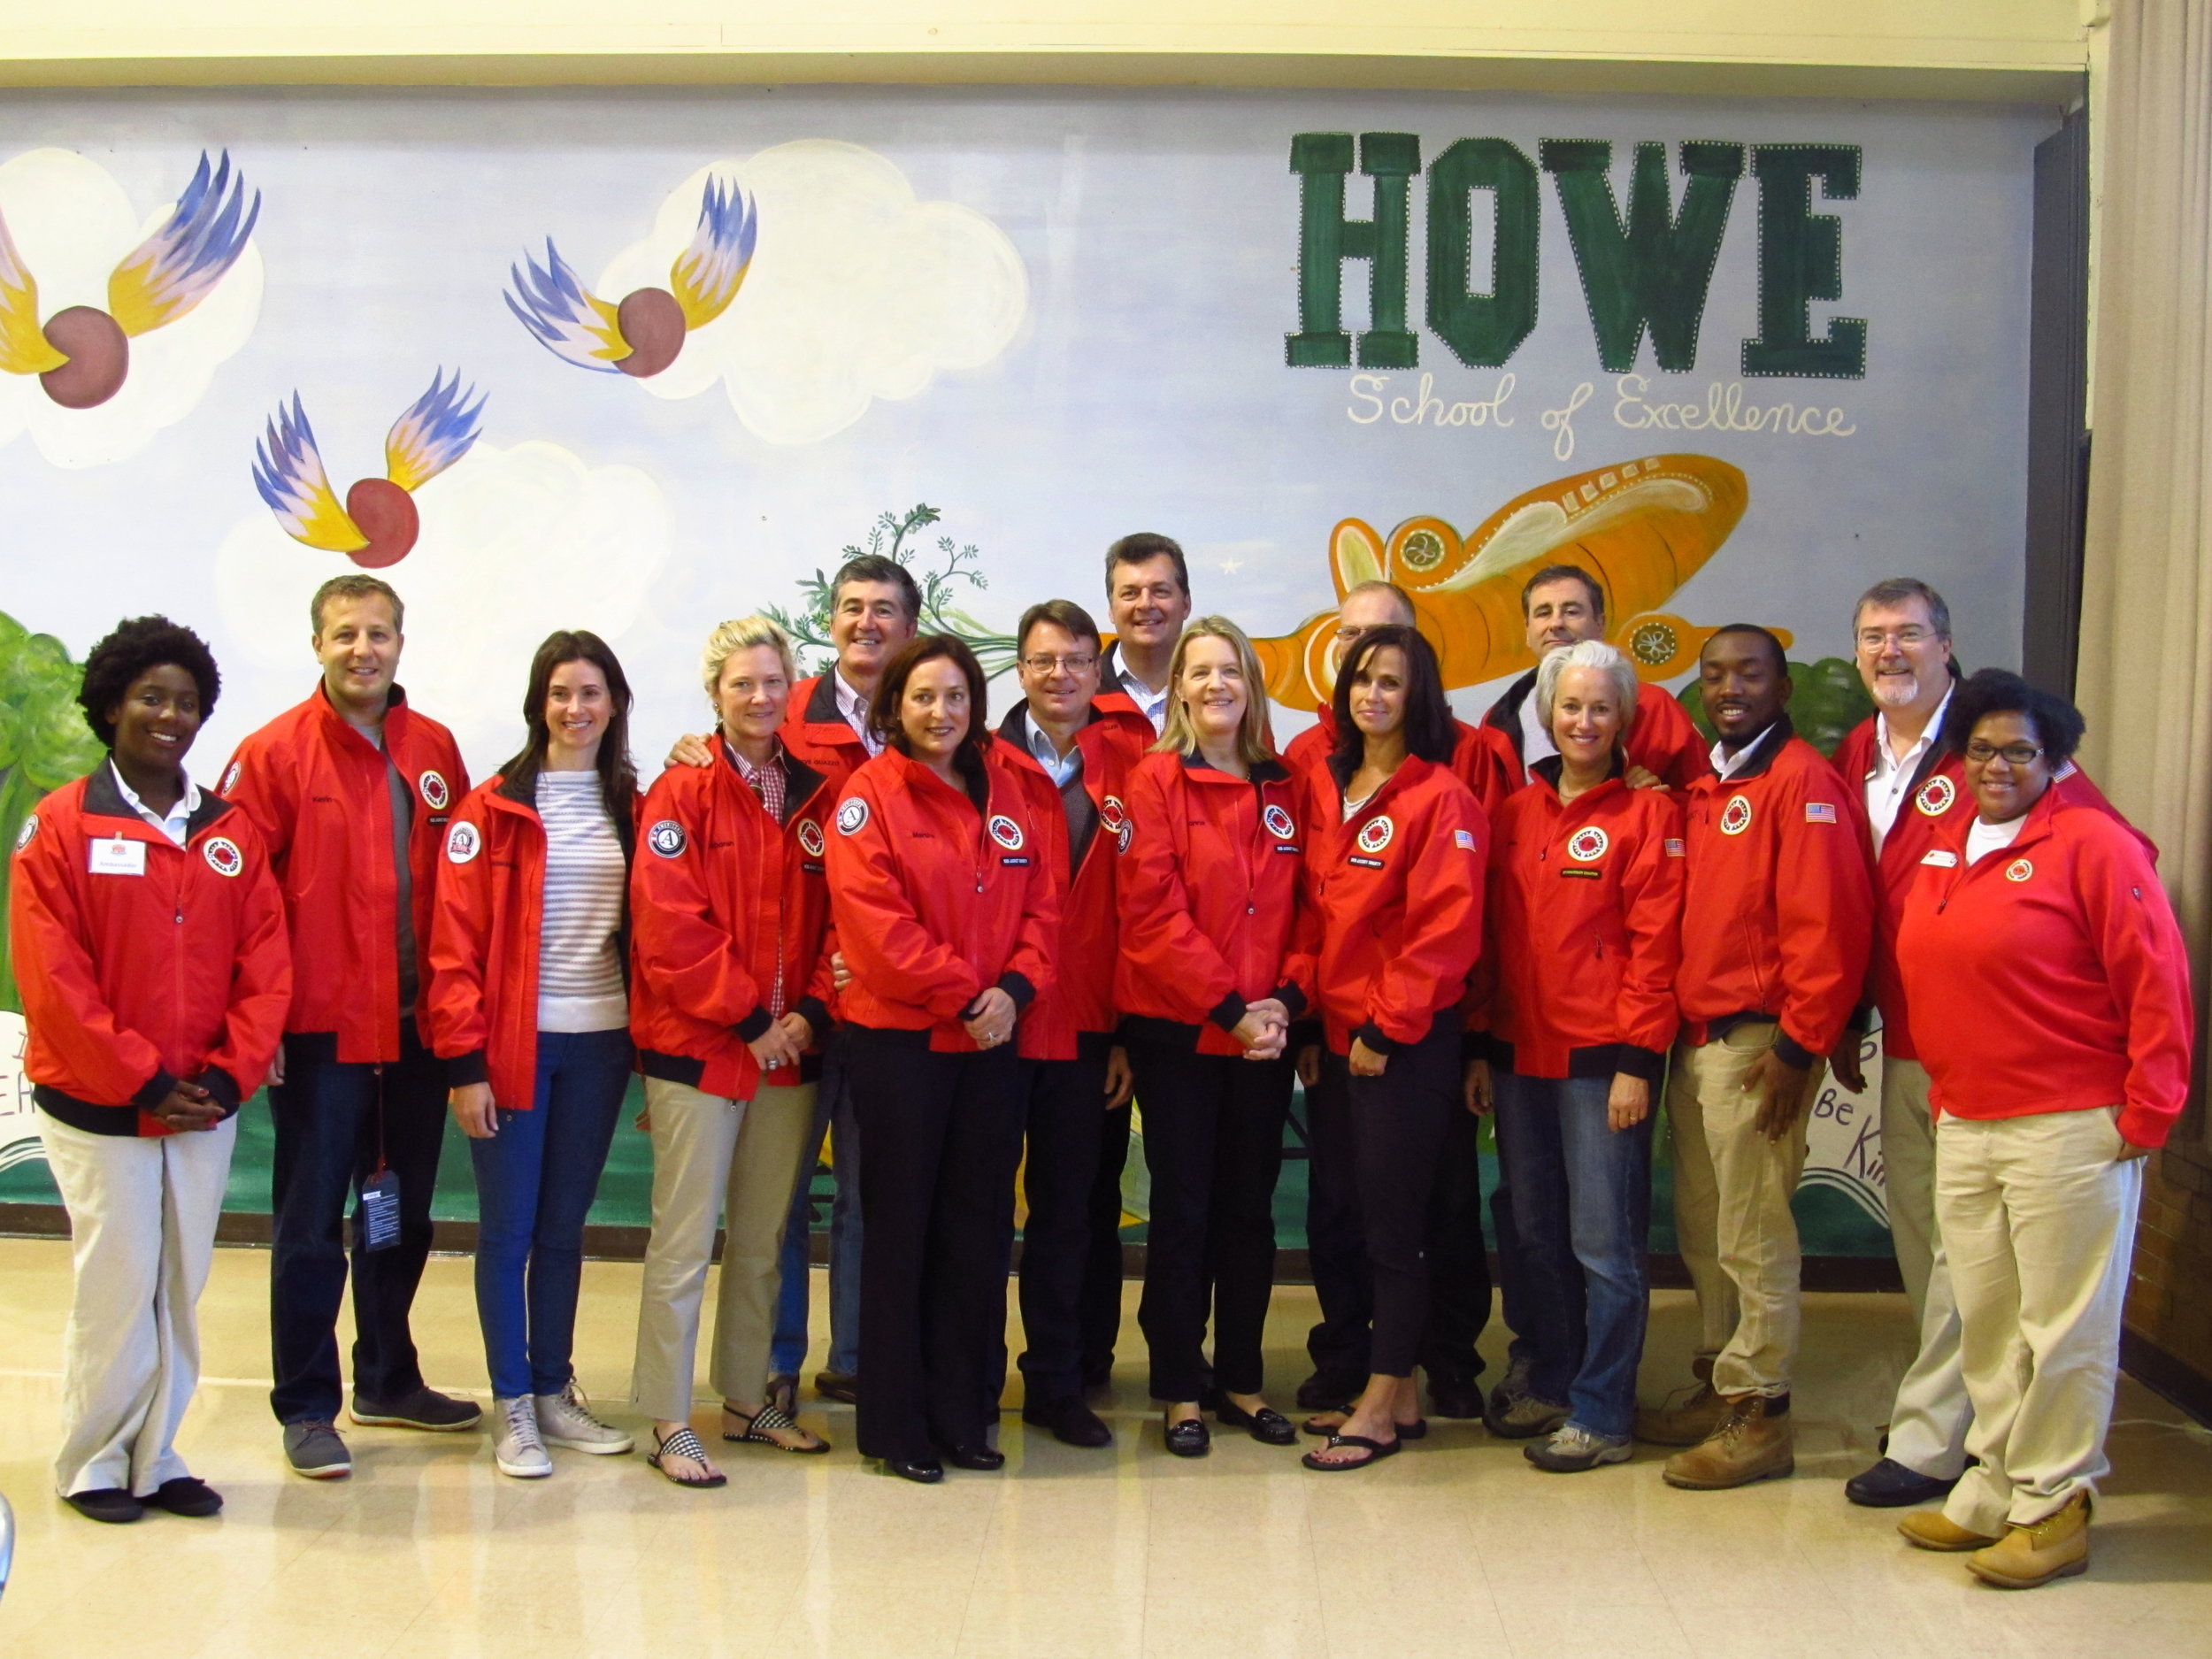 Red Jacket Society Members and AmeriCorps members following the Jacket Dedication Ceremony